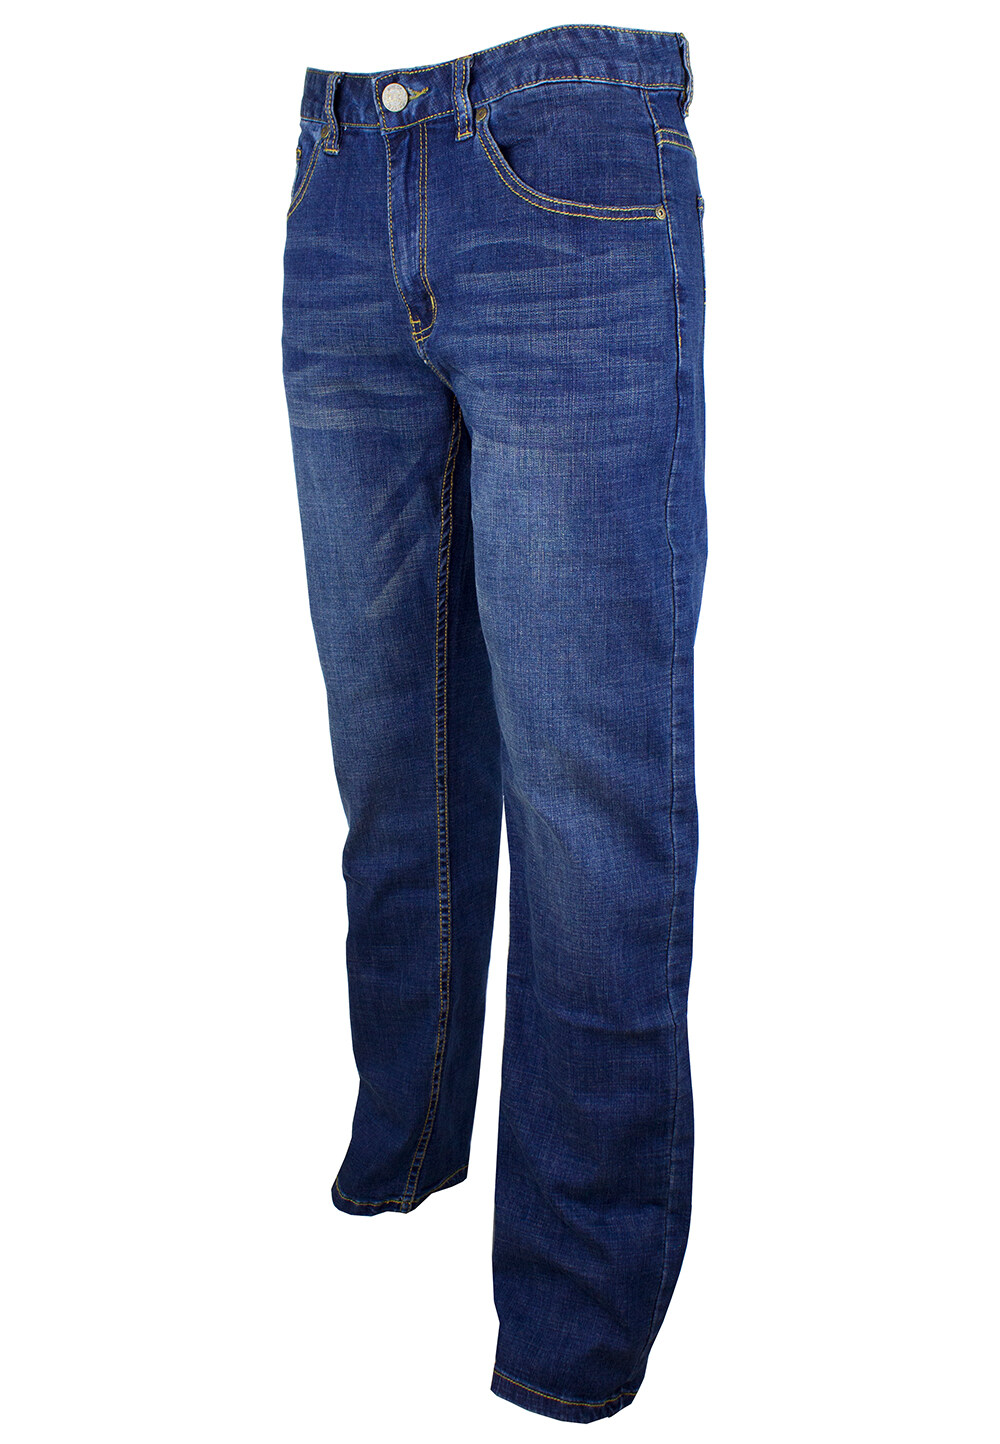 Exhaust Stretch Straight Cut Denim Long Pant 911